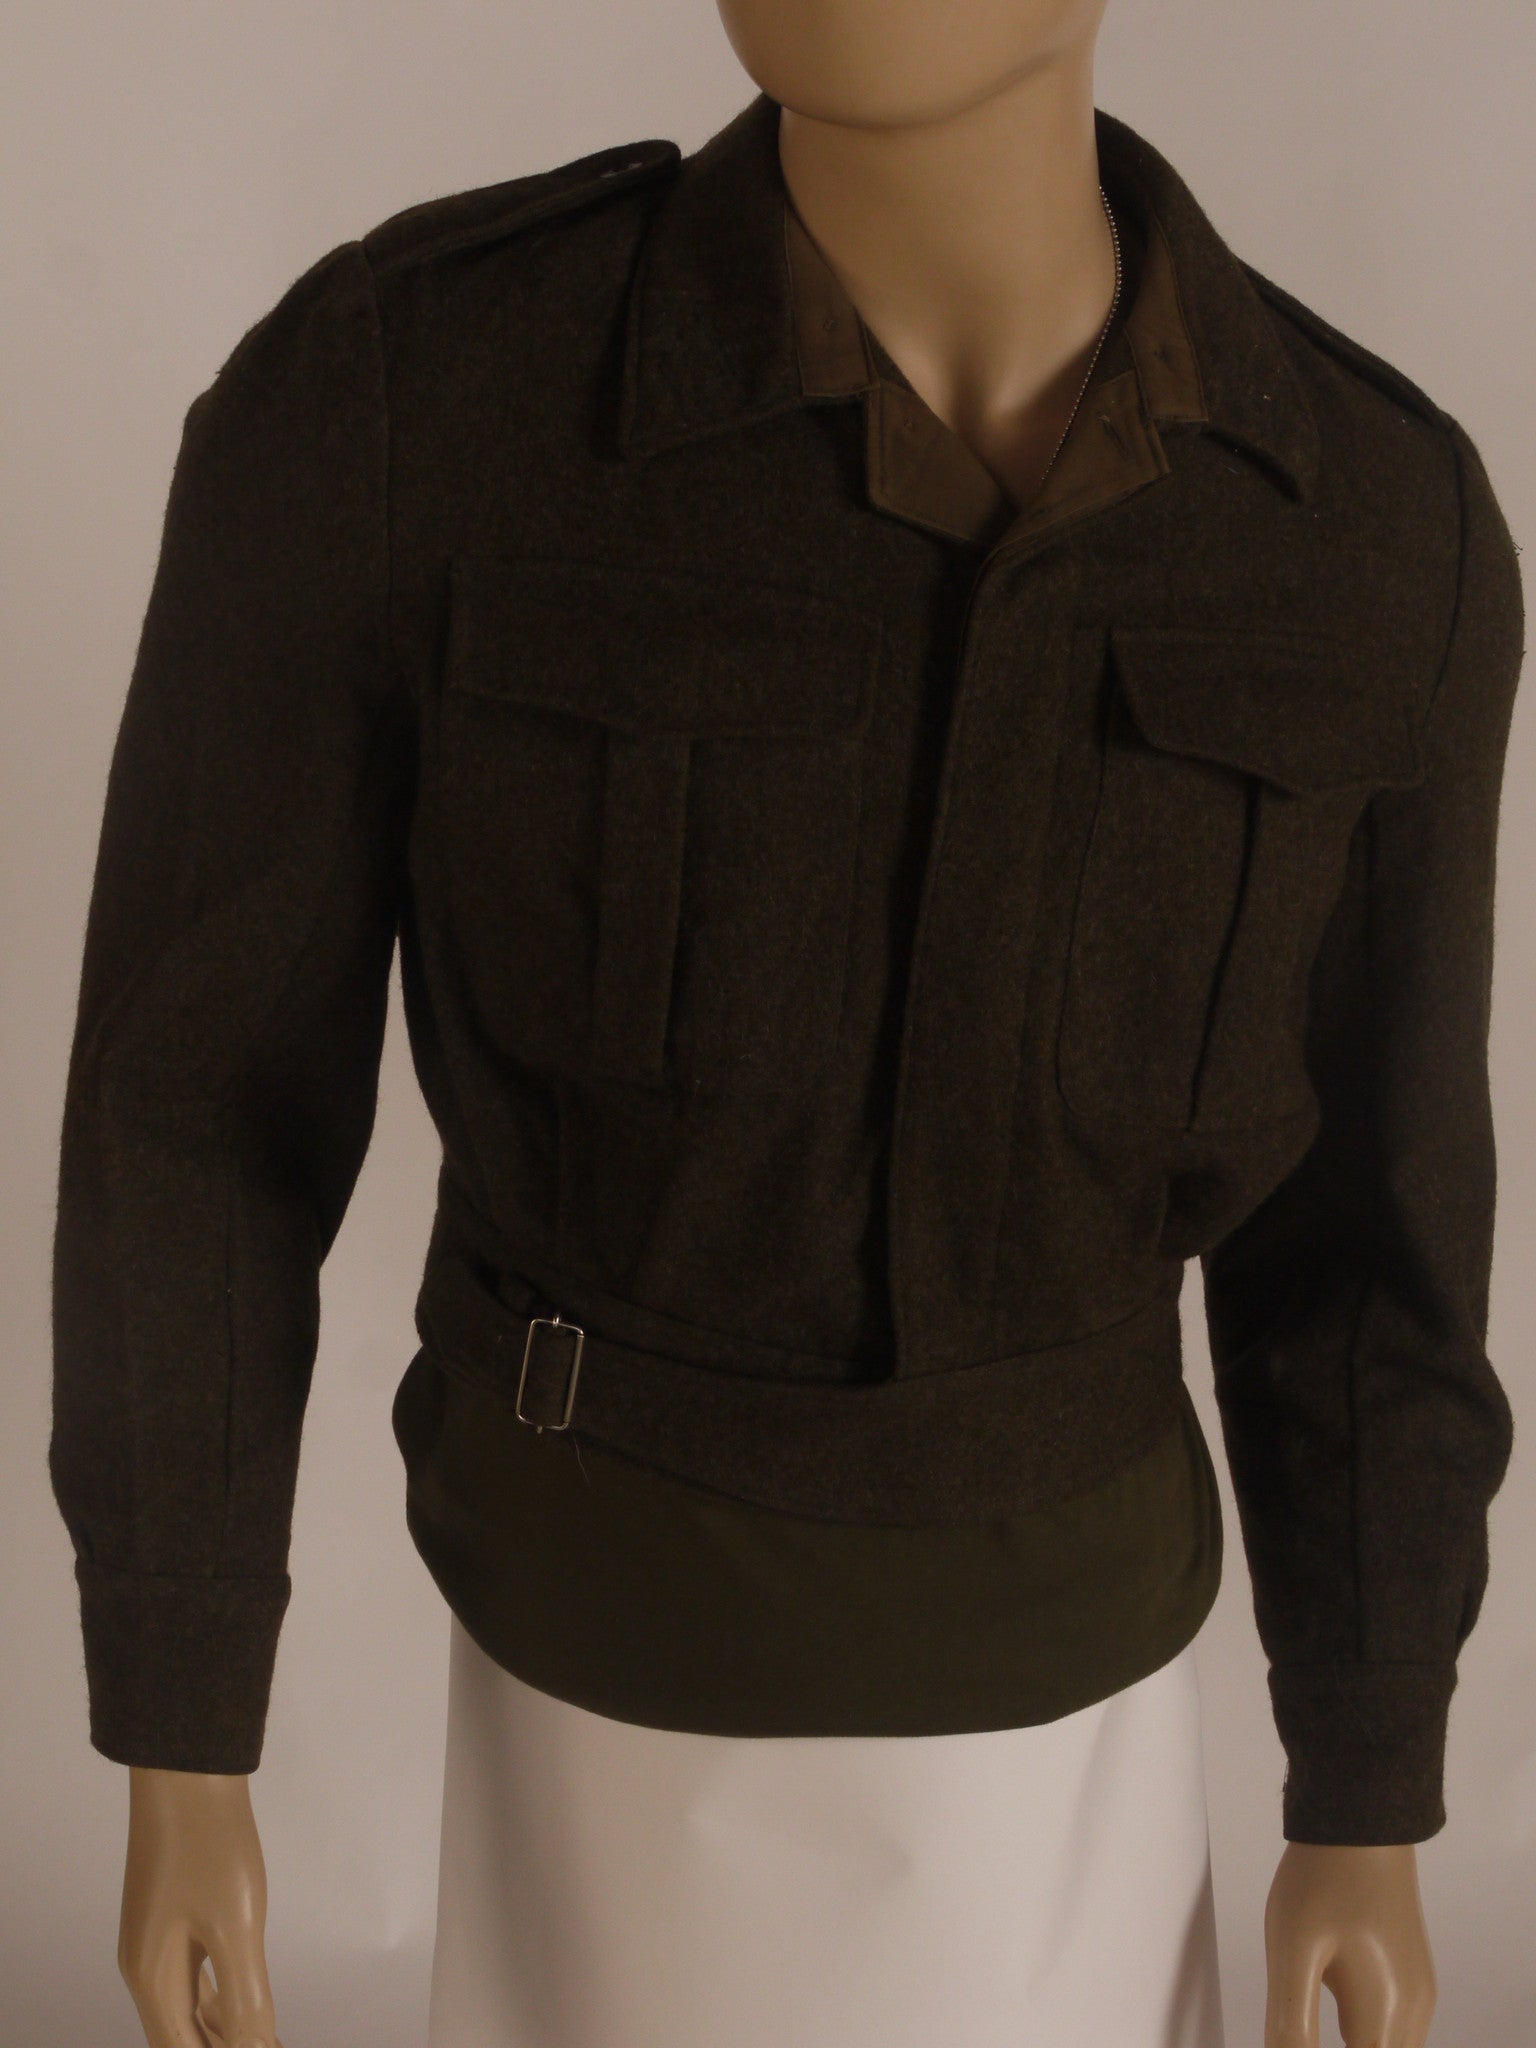 WW2 style Battle dress jacket